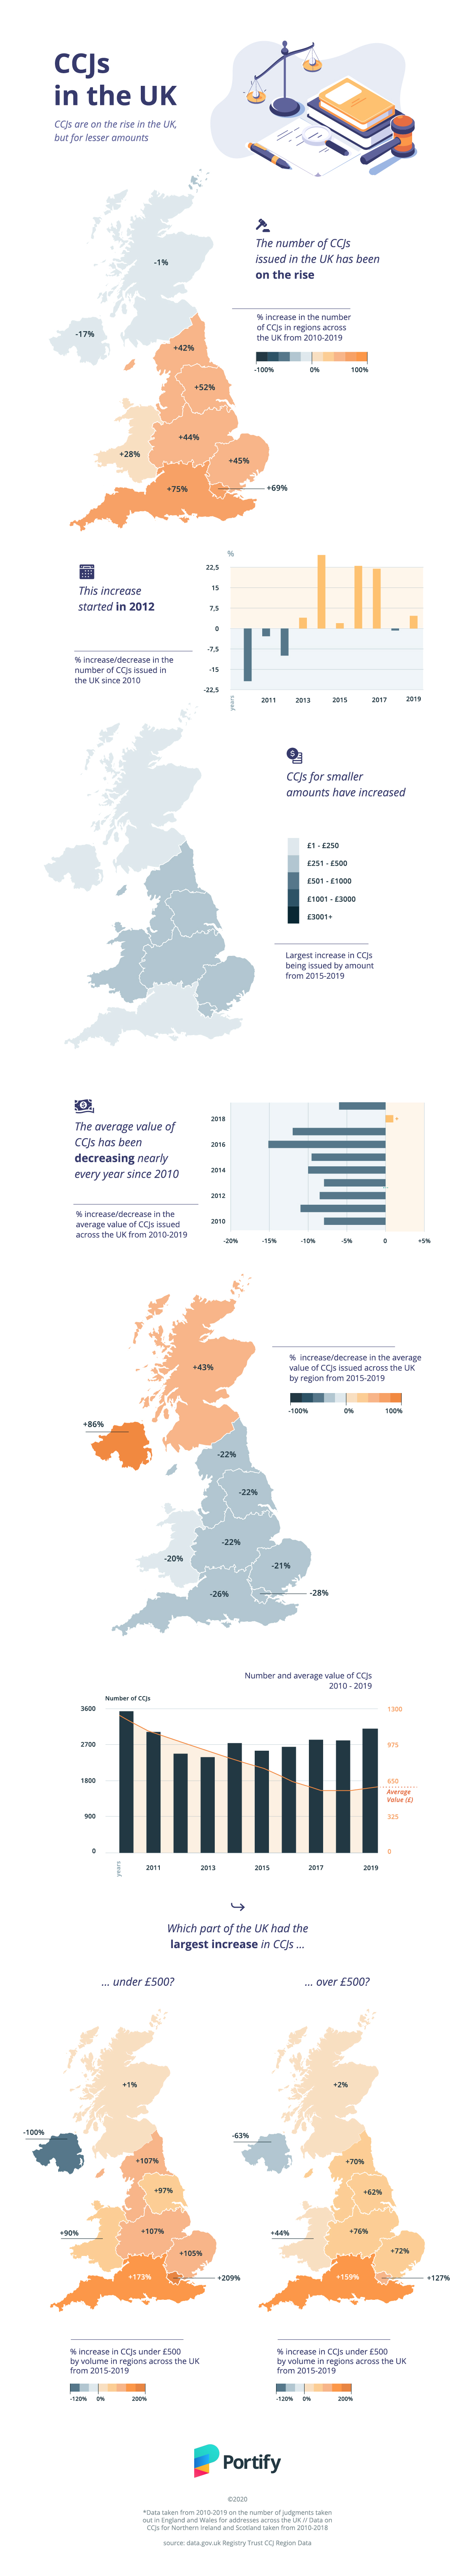 Infographic showing the increase in CCJs across the UK, average value of CCJs in the UK from 2010, increase in CCJs under £500 in the UK and CCJs over £500 across the UK